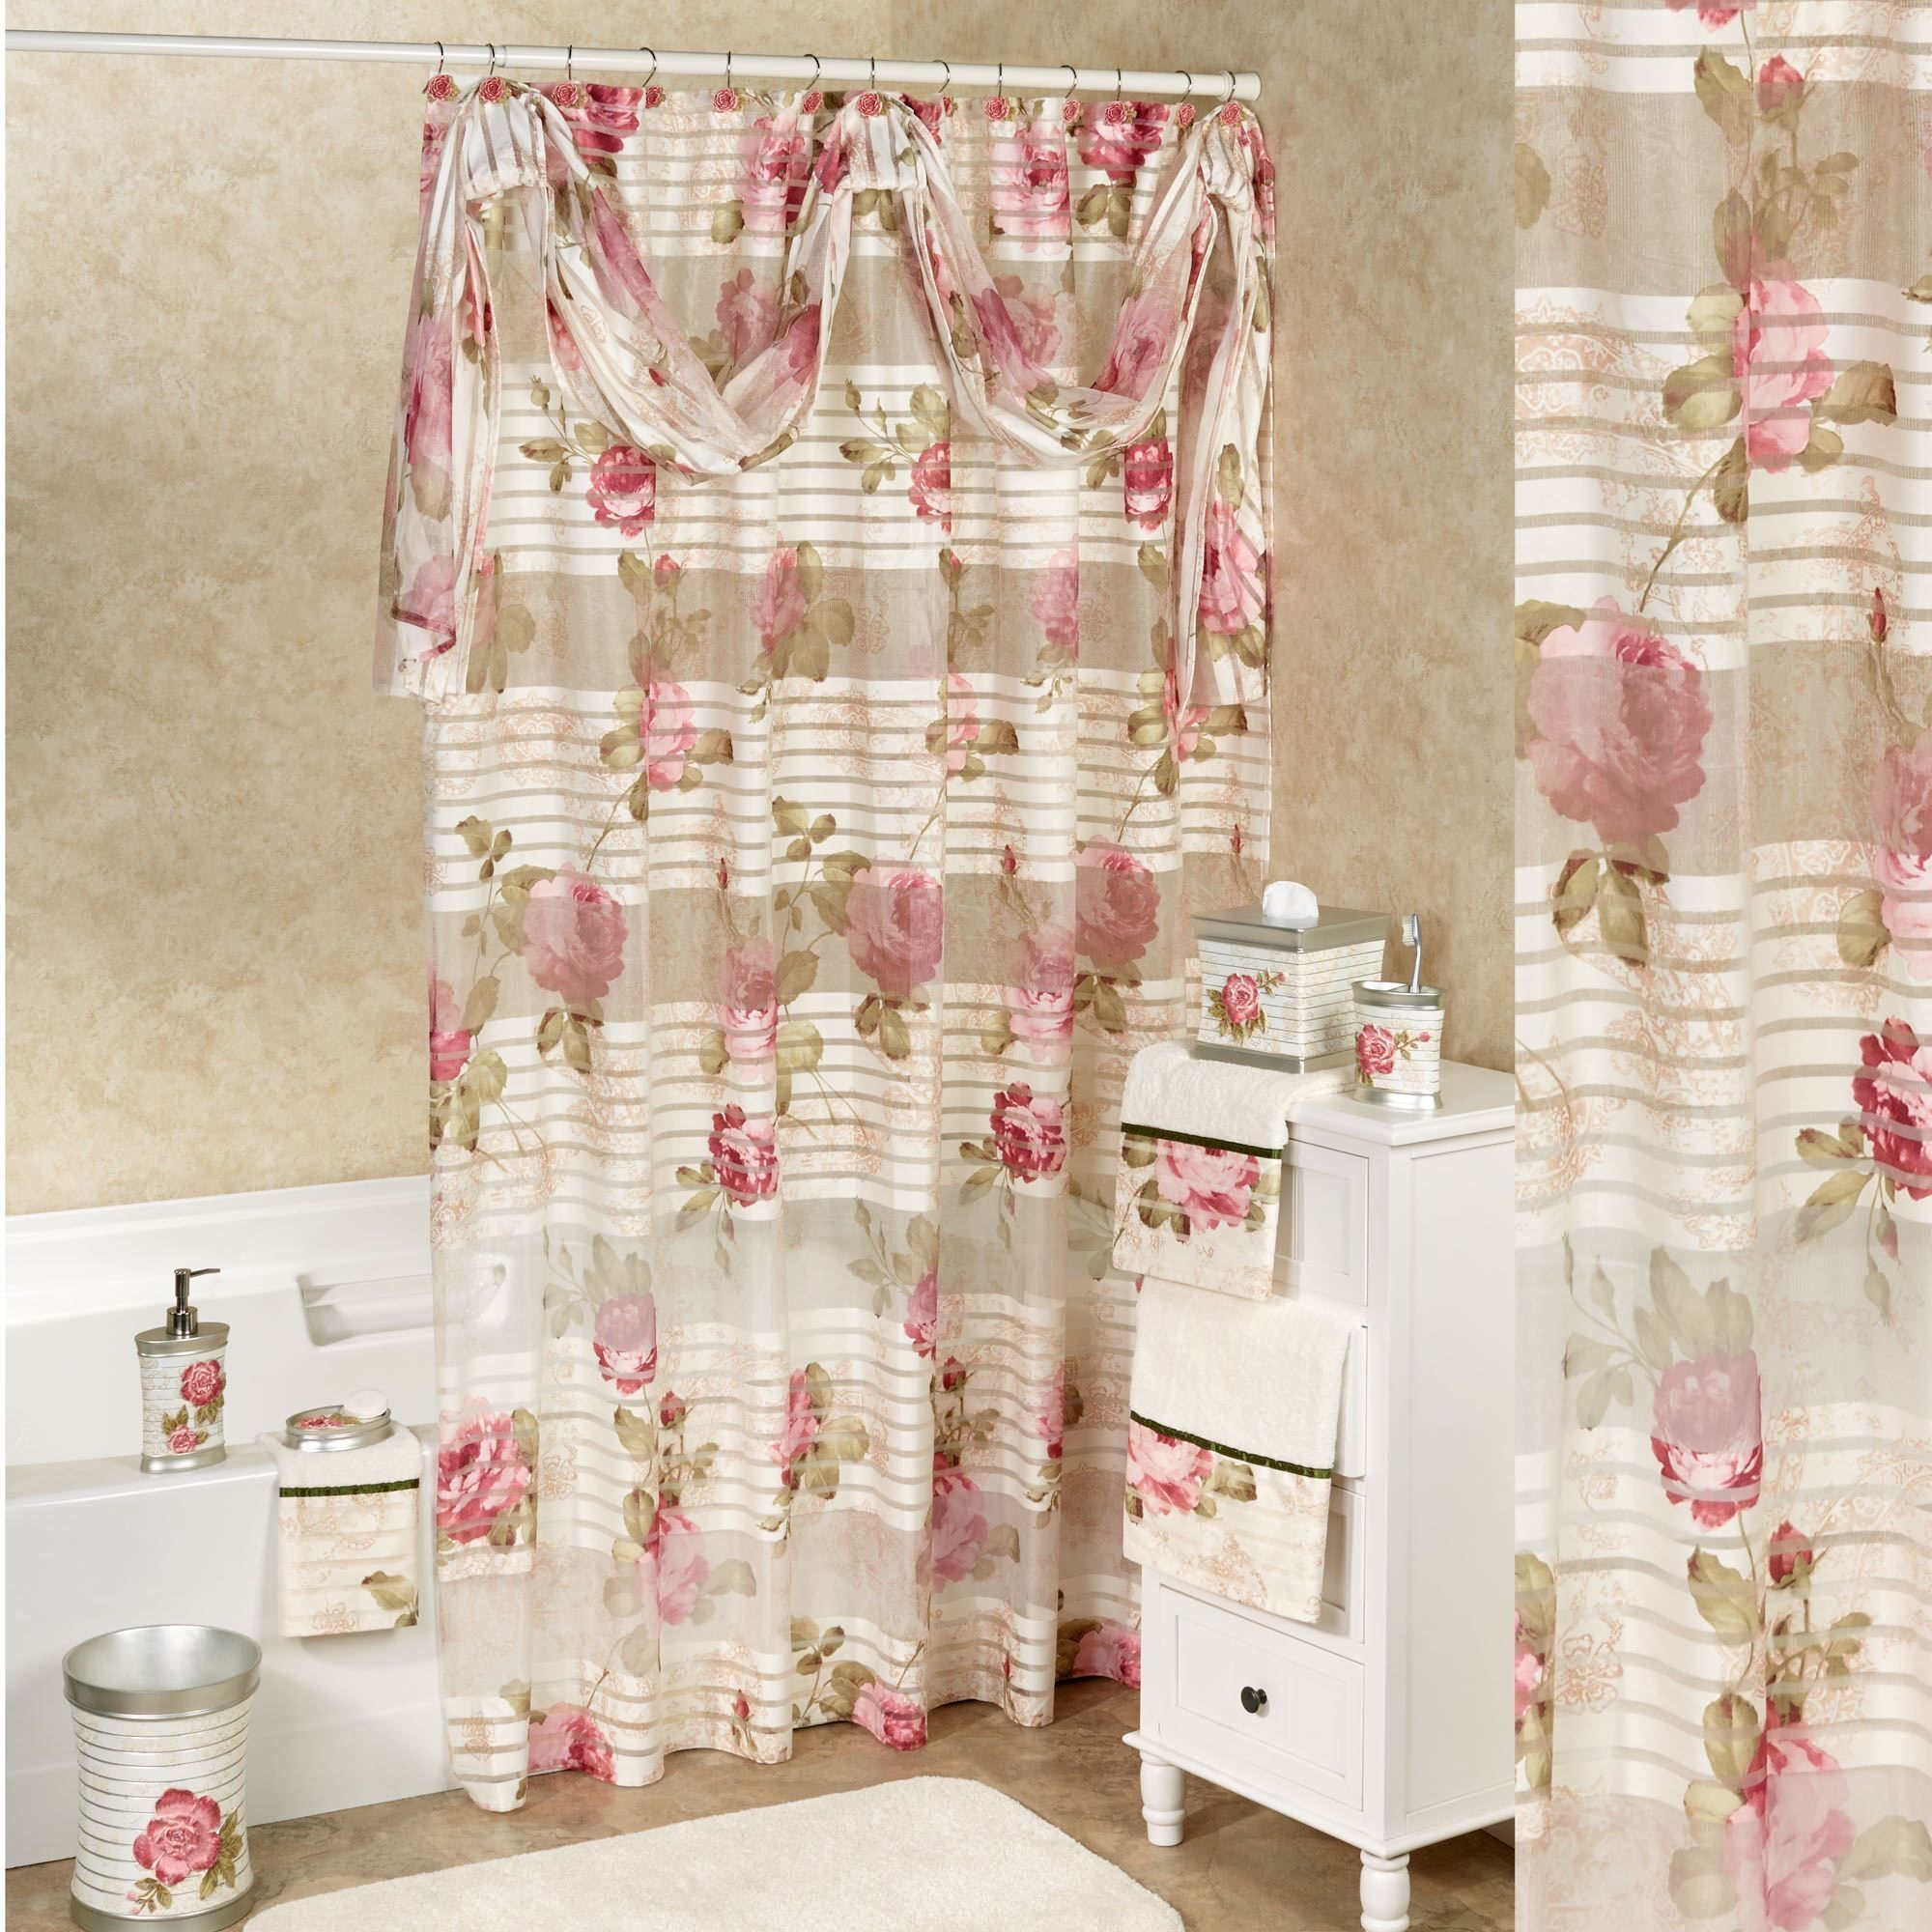 Beau Vintage Rose Shower Curtain   There Are Lots Of Types Of Curtains To Select  From. It Is Possible To Have Ones That Are Oblong